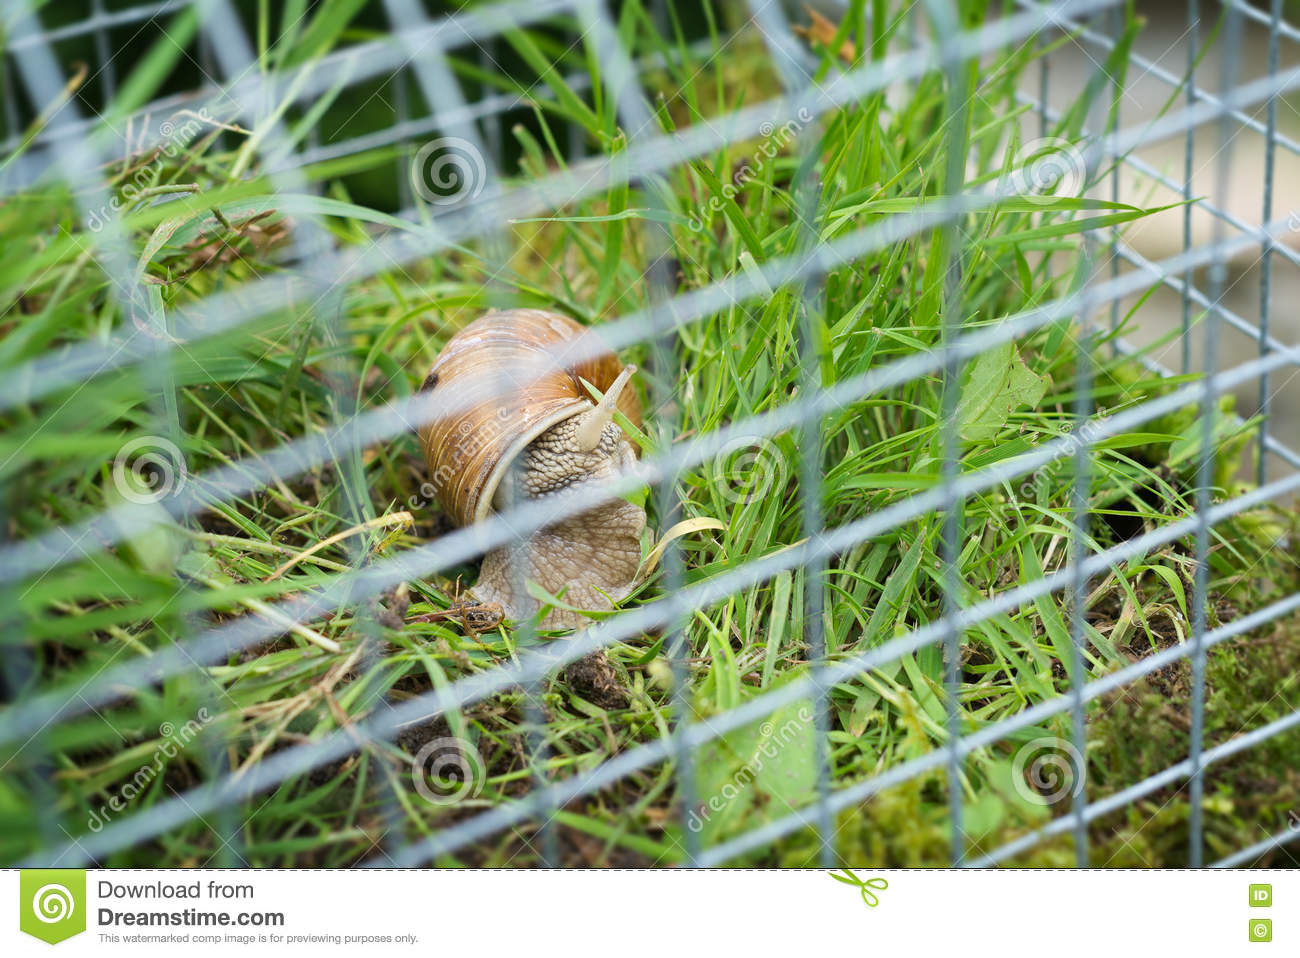 Download Fairy House Garden Decoration Hanging Wire Cage, Moss, Mushroom,  Snail Stock Illustration